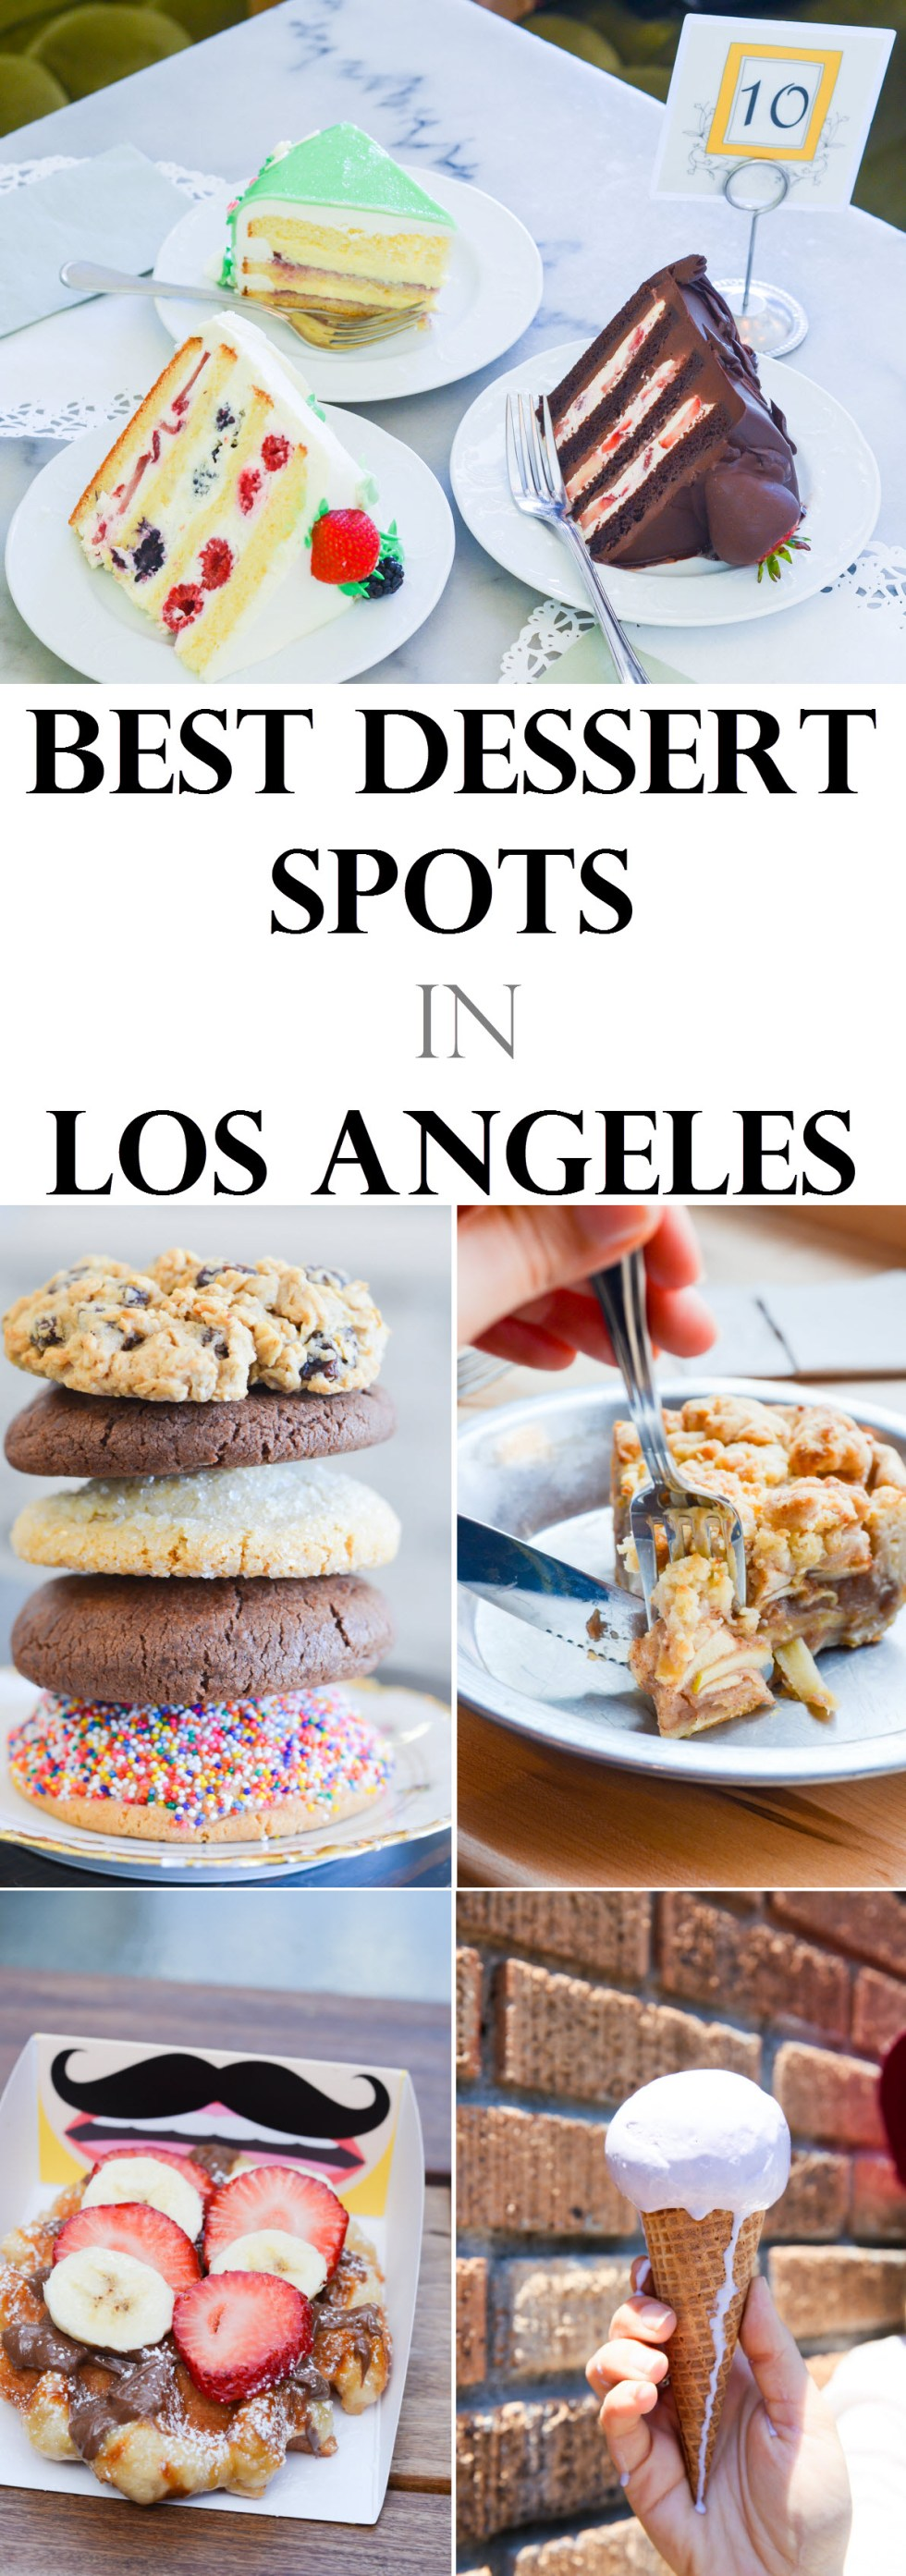 Best Dessert Spots in Los ANgeles - Pie, Cookies, Ice Cream, Waffles, and Cake